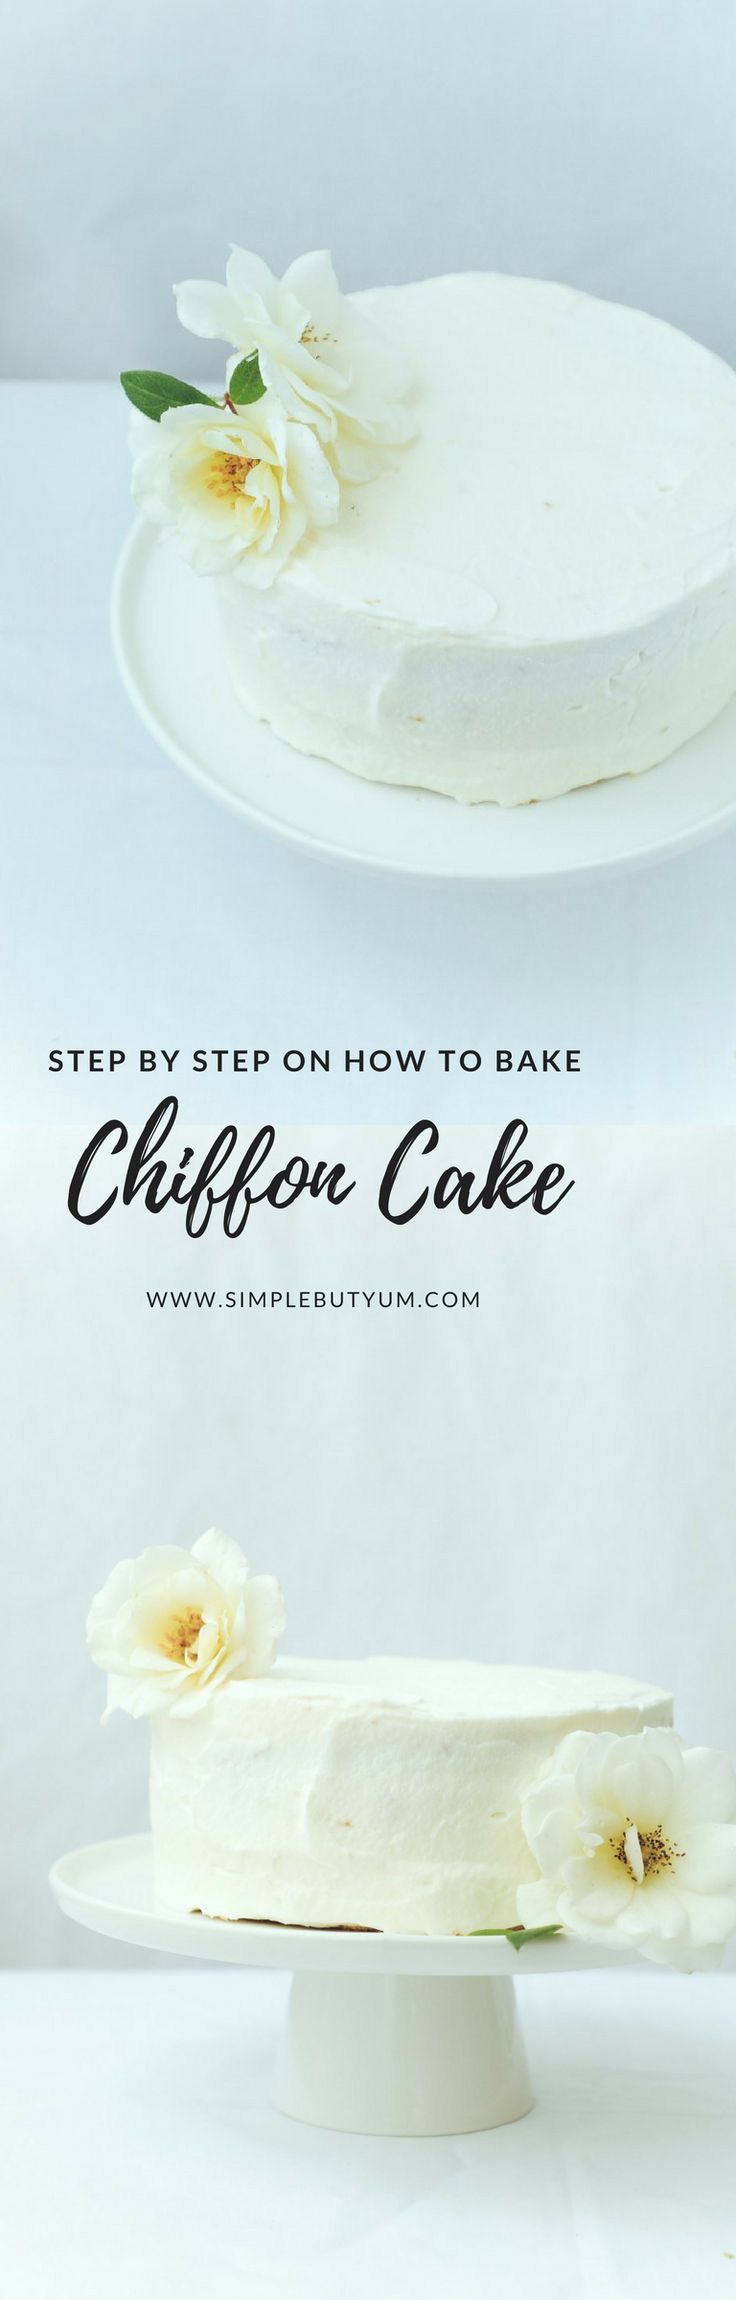 Step by step guide on how to bake a perfect chiffon cake with a regular cake baking pan. Chiffon cake is the base for ot…